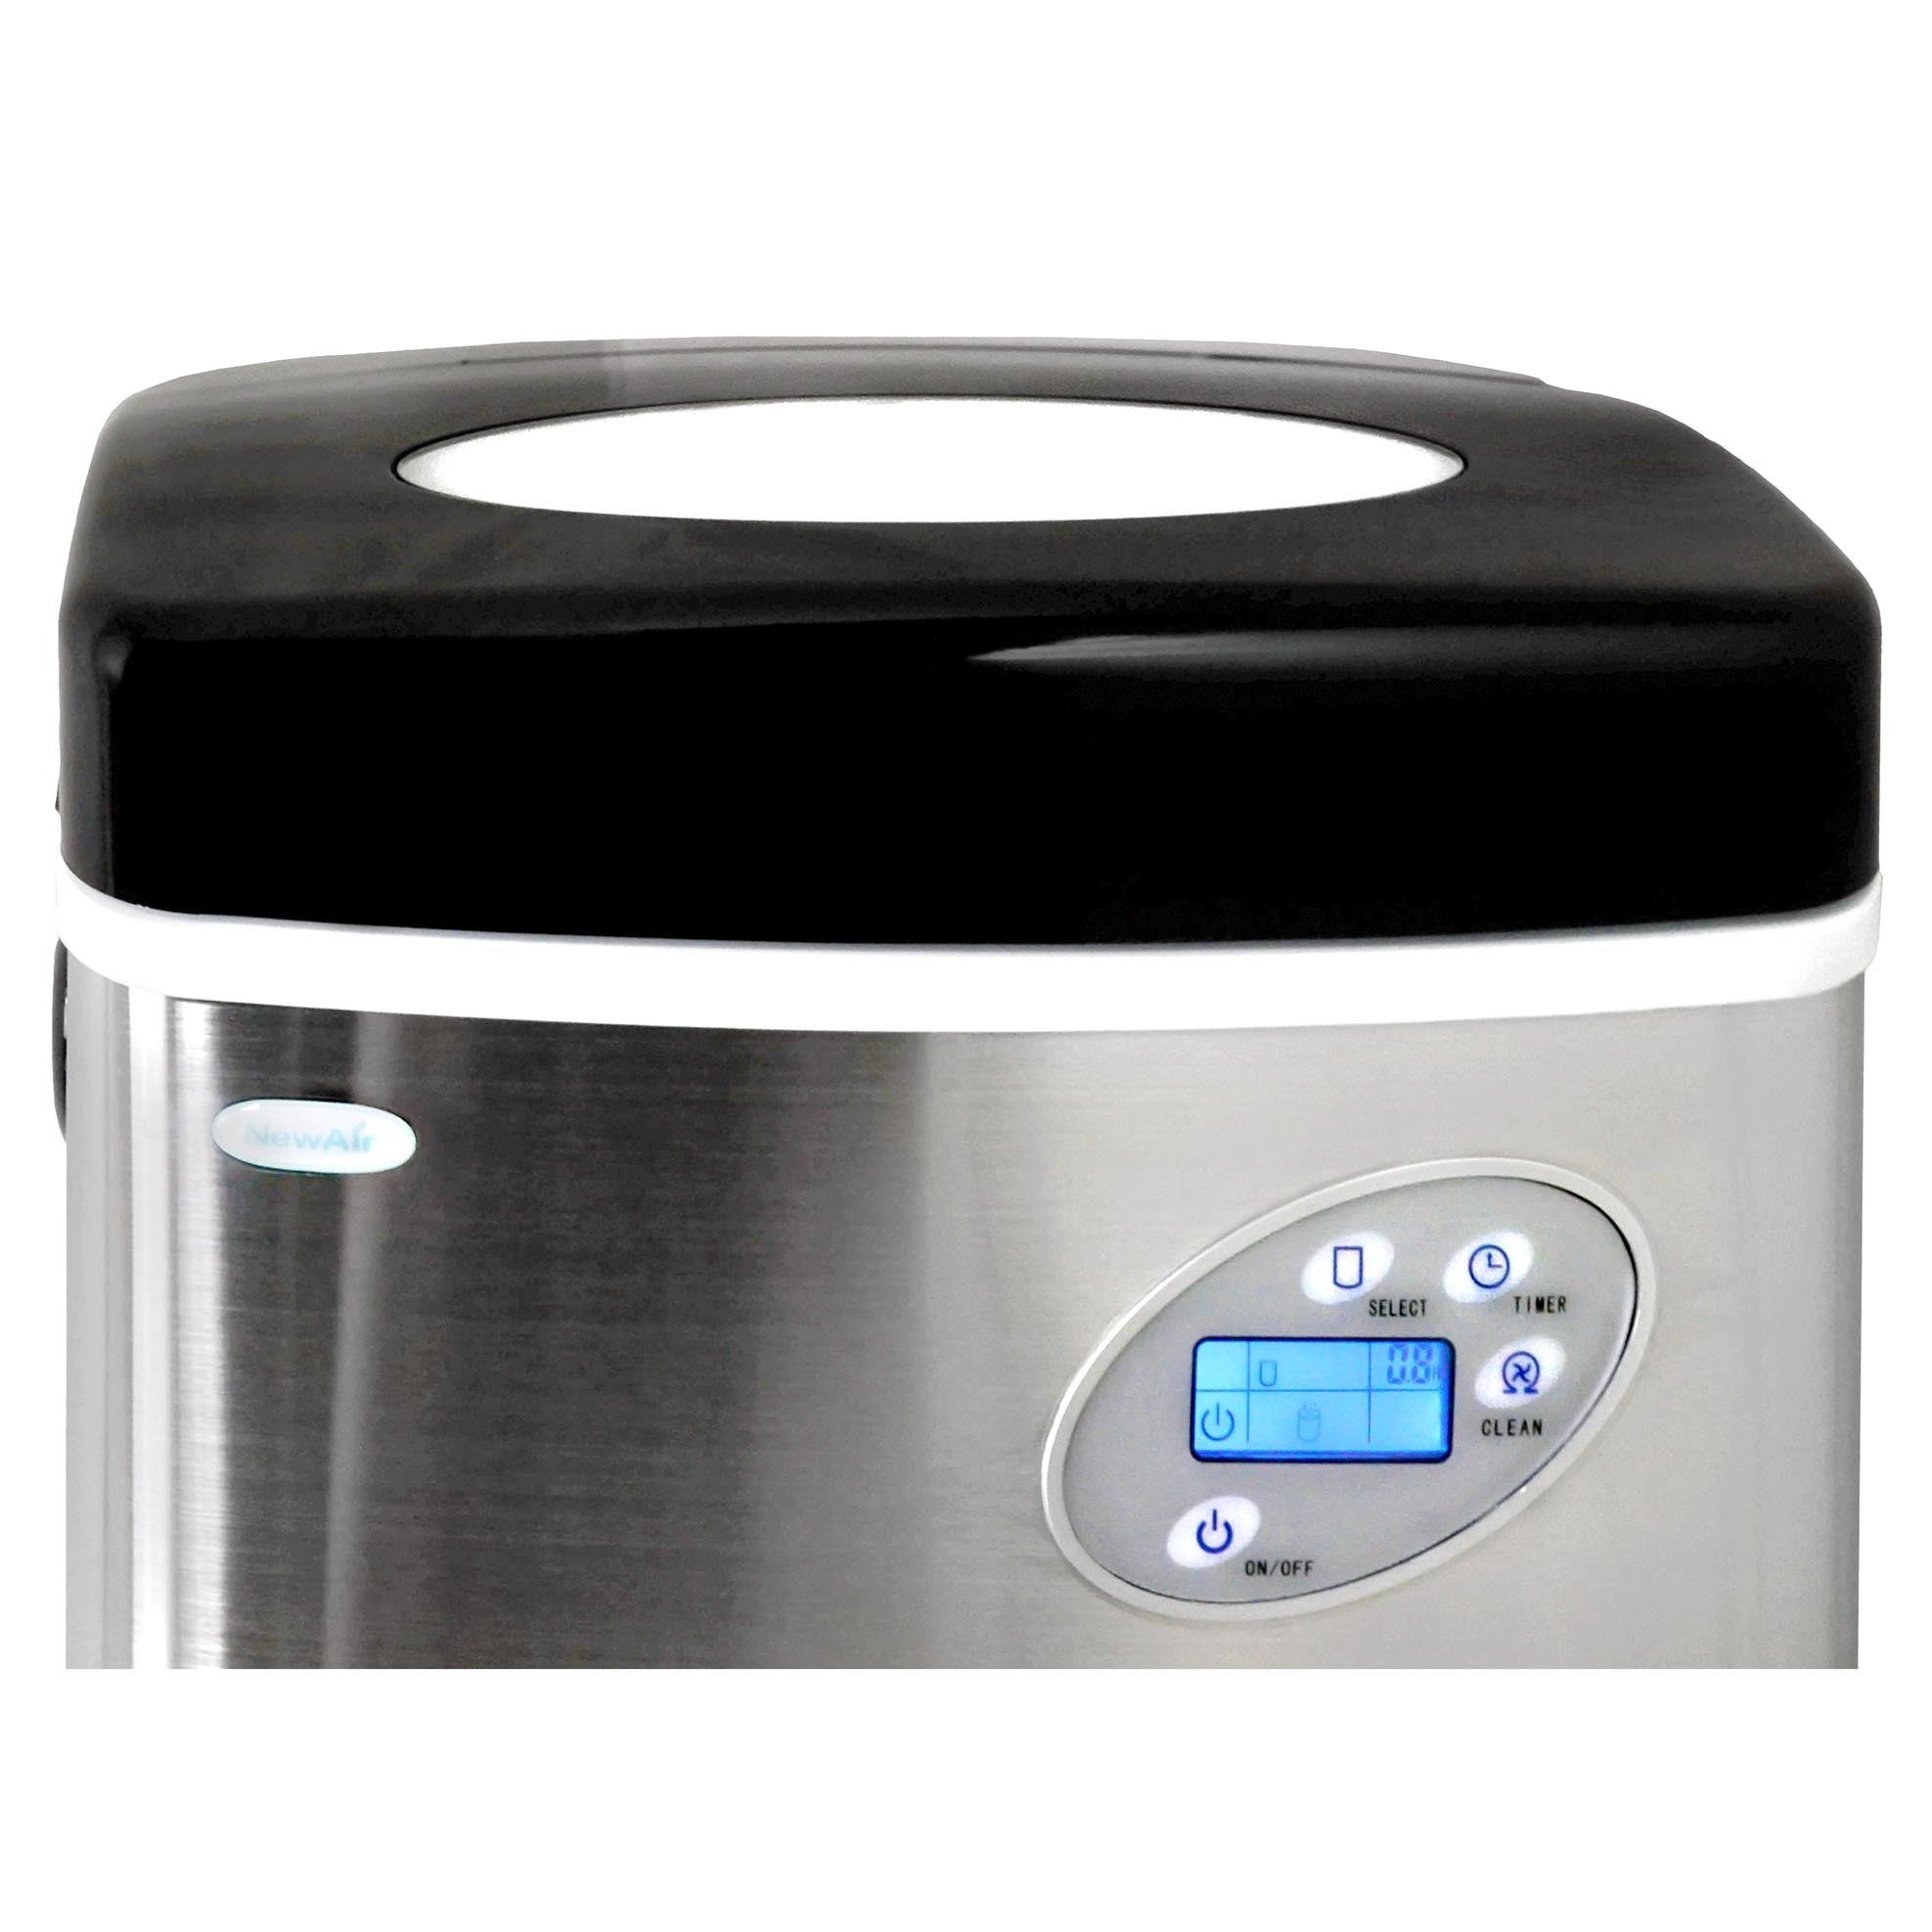 countertops rated countertop pcr top best energy counter with com icemaker amazon customer reviews maker high noise helpful cube low makers efficiency machine ice icefeast in